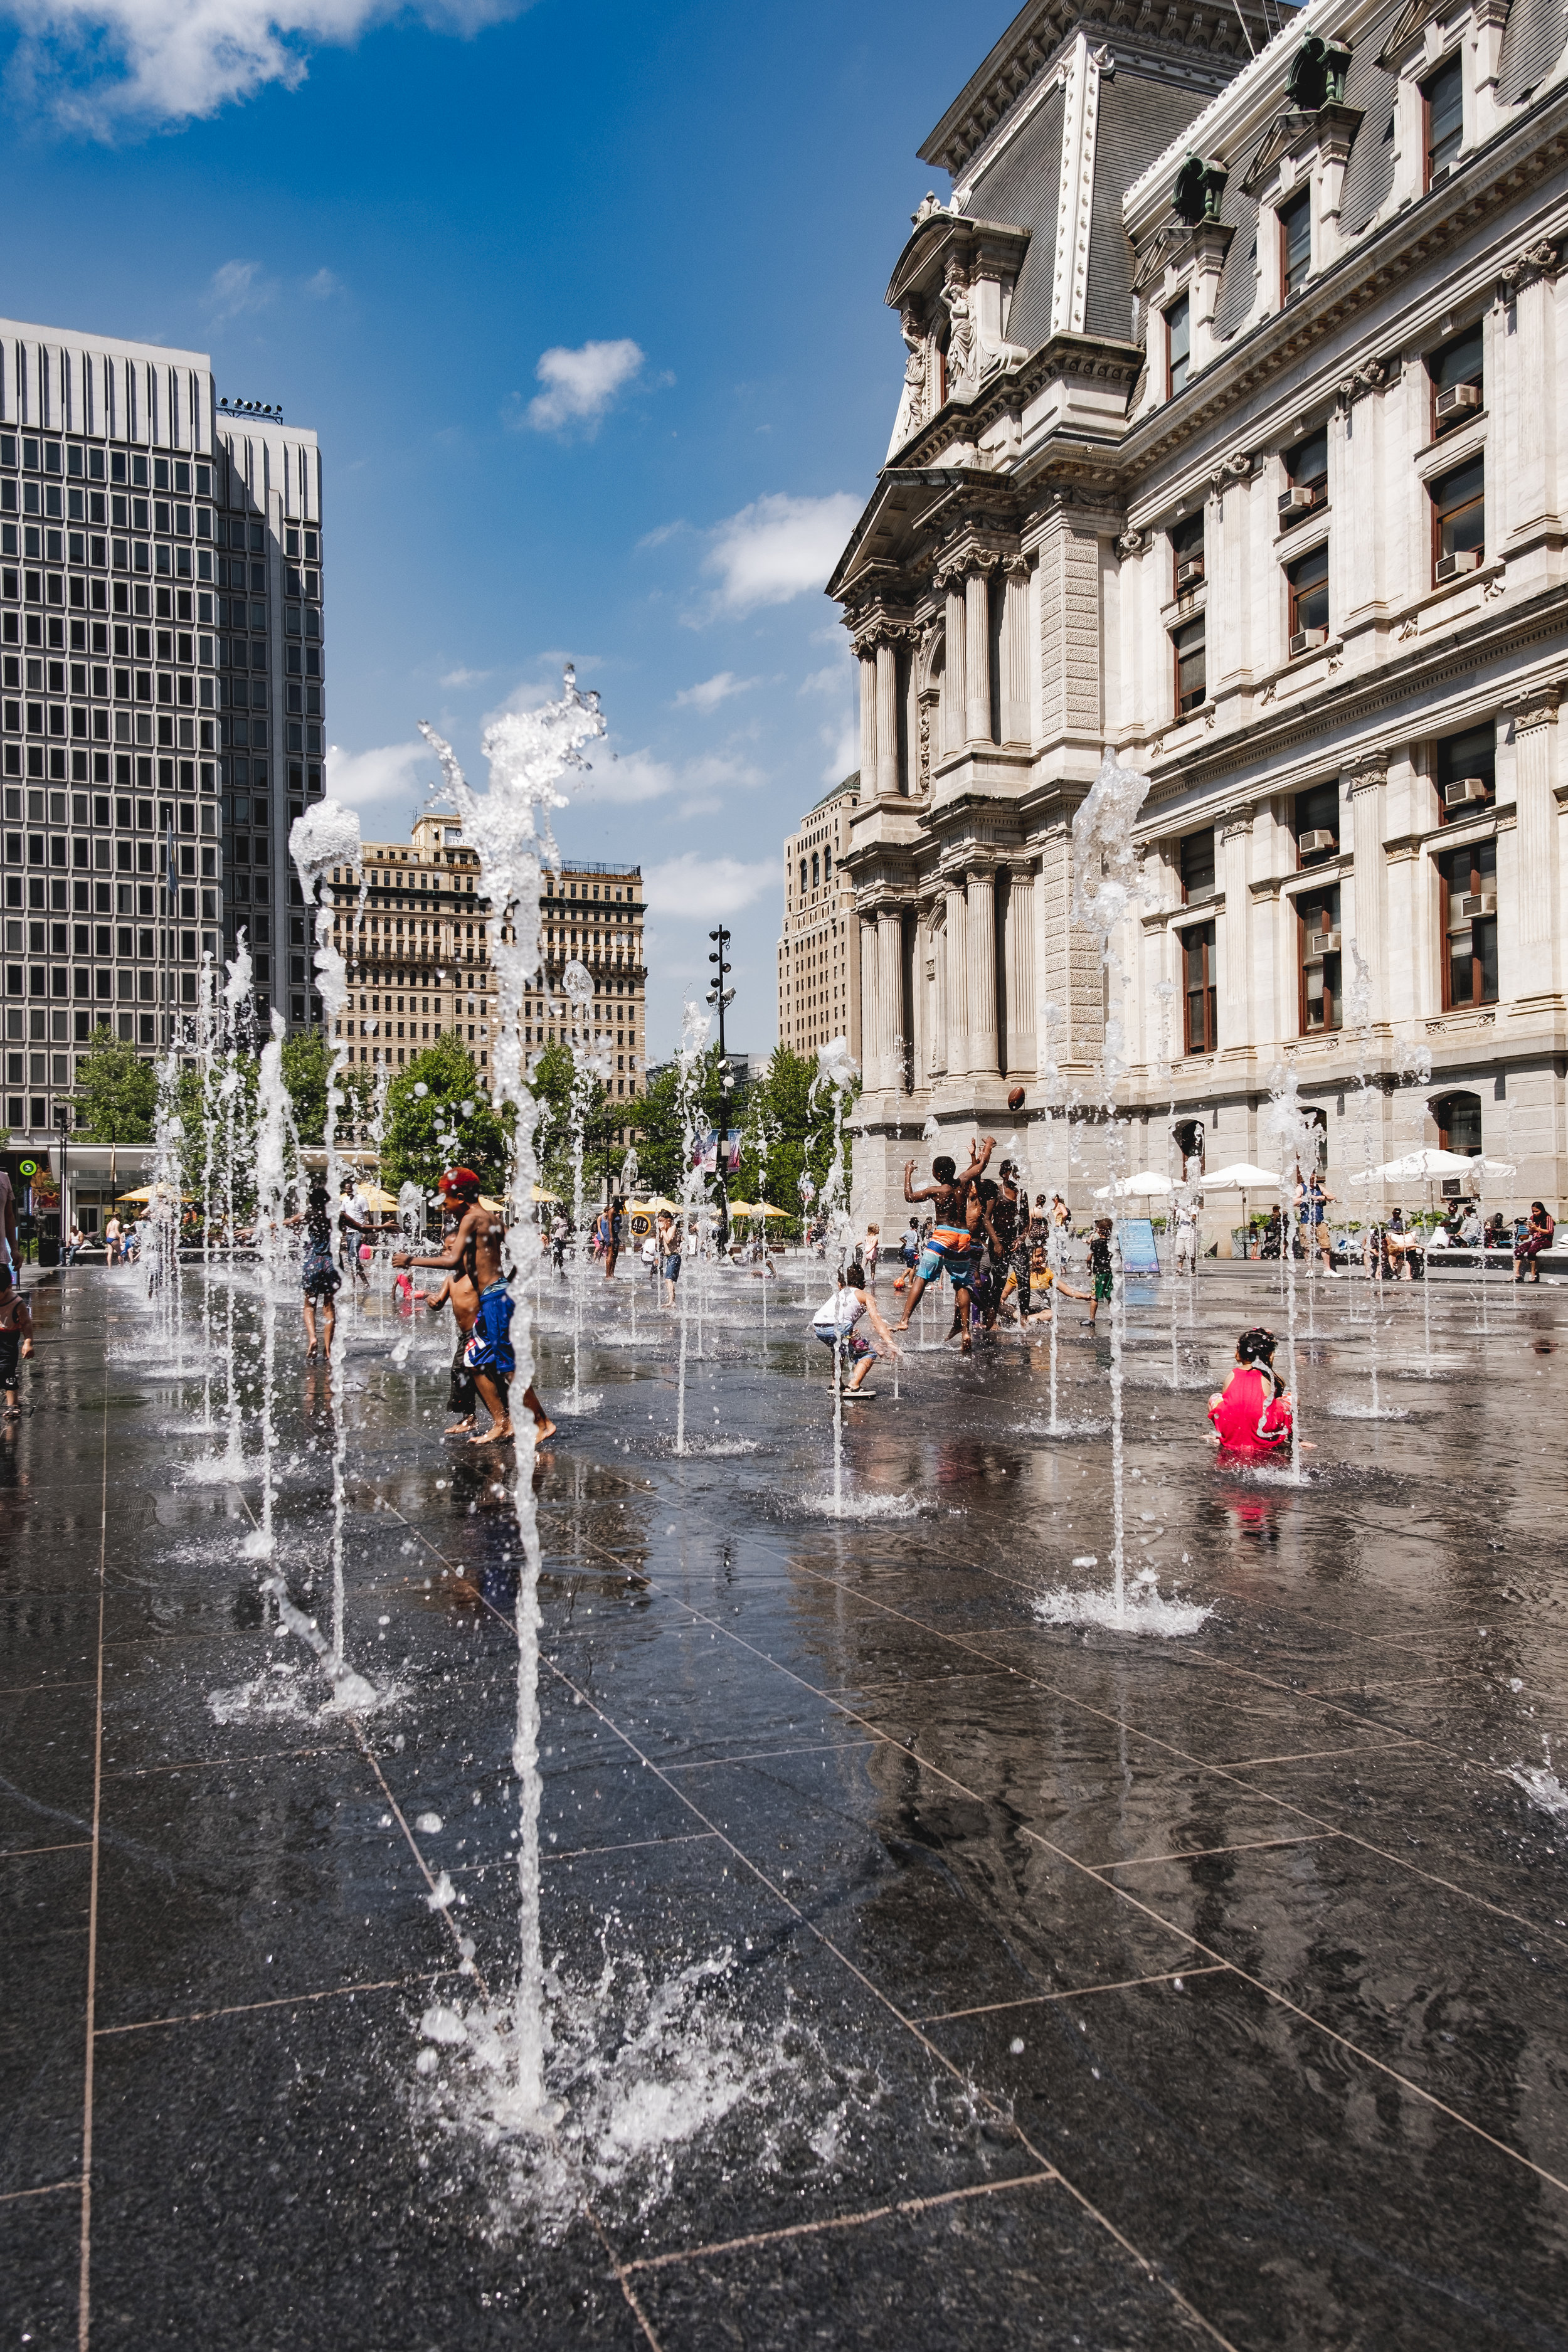 2019_5.19_DILWORTH PARK_SIDE IMAGES_THE PHILLY CHECKLIST-1.jpg